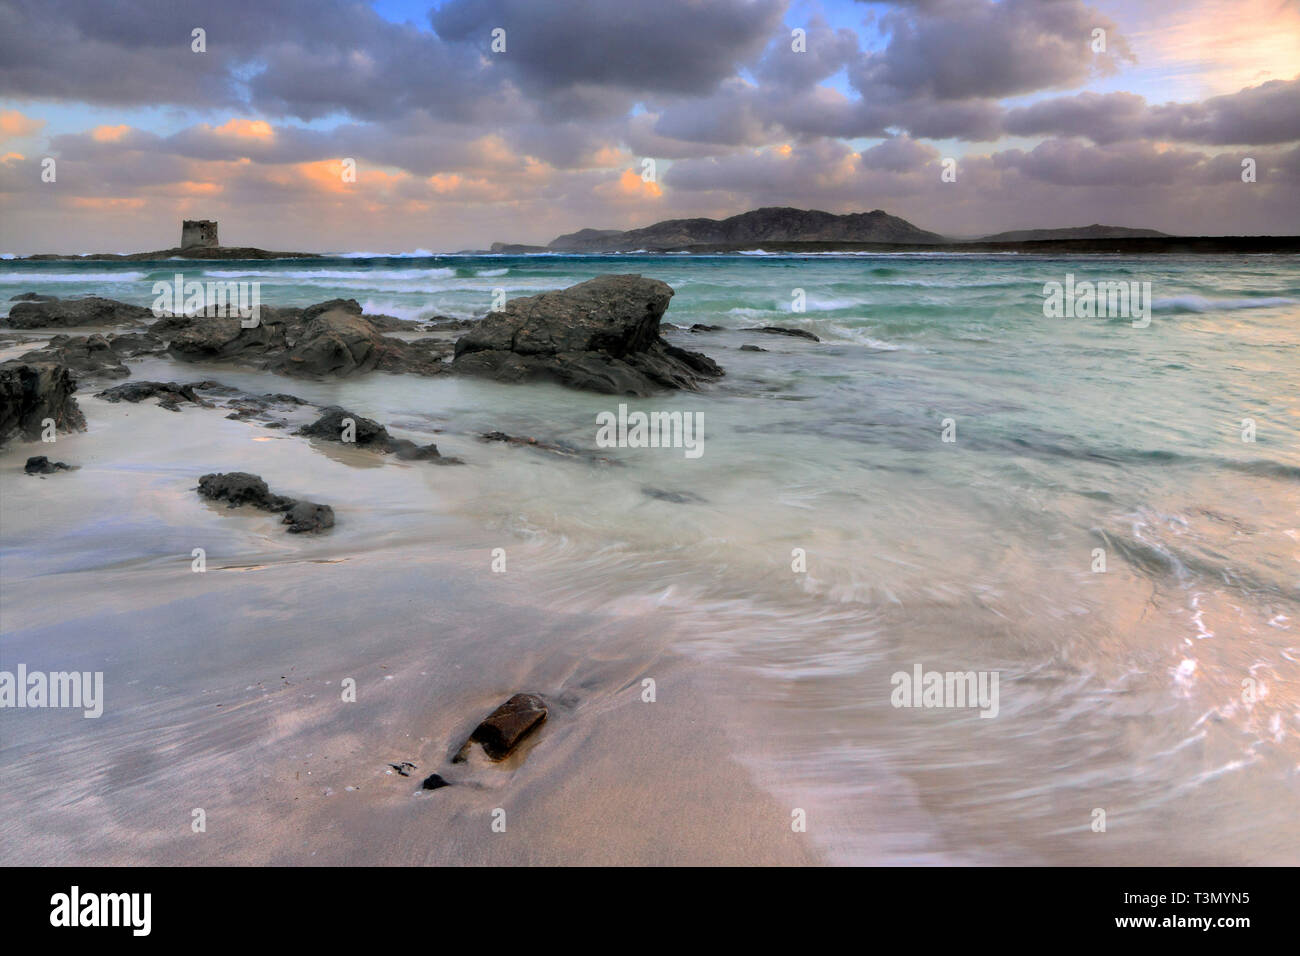 A view at sunrise of the wonderful, tropical-like beach of La Pelosa nearby Stintino in Sardinia, Italy, with the XVI century Genovese watch tower and - Stock Image